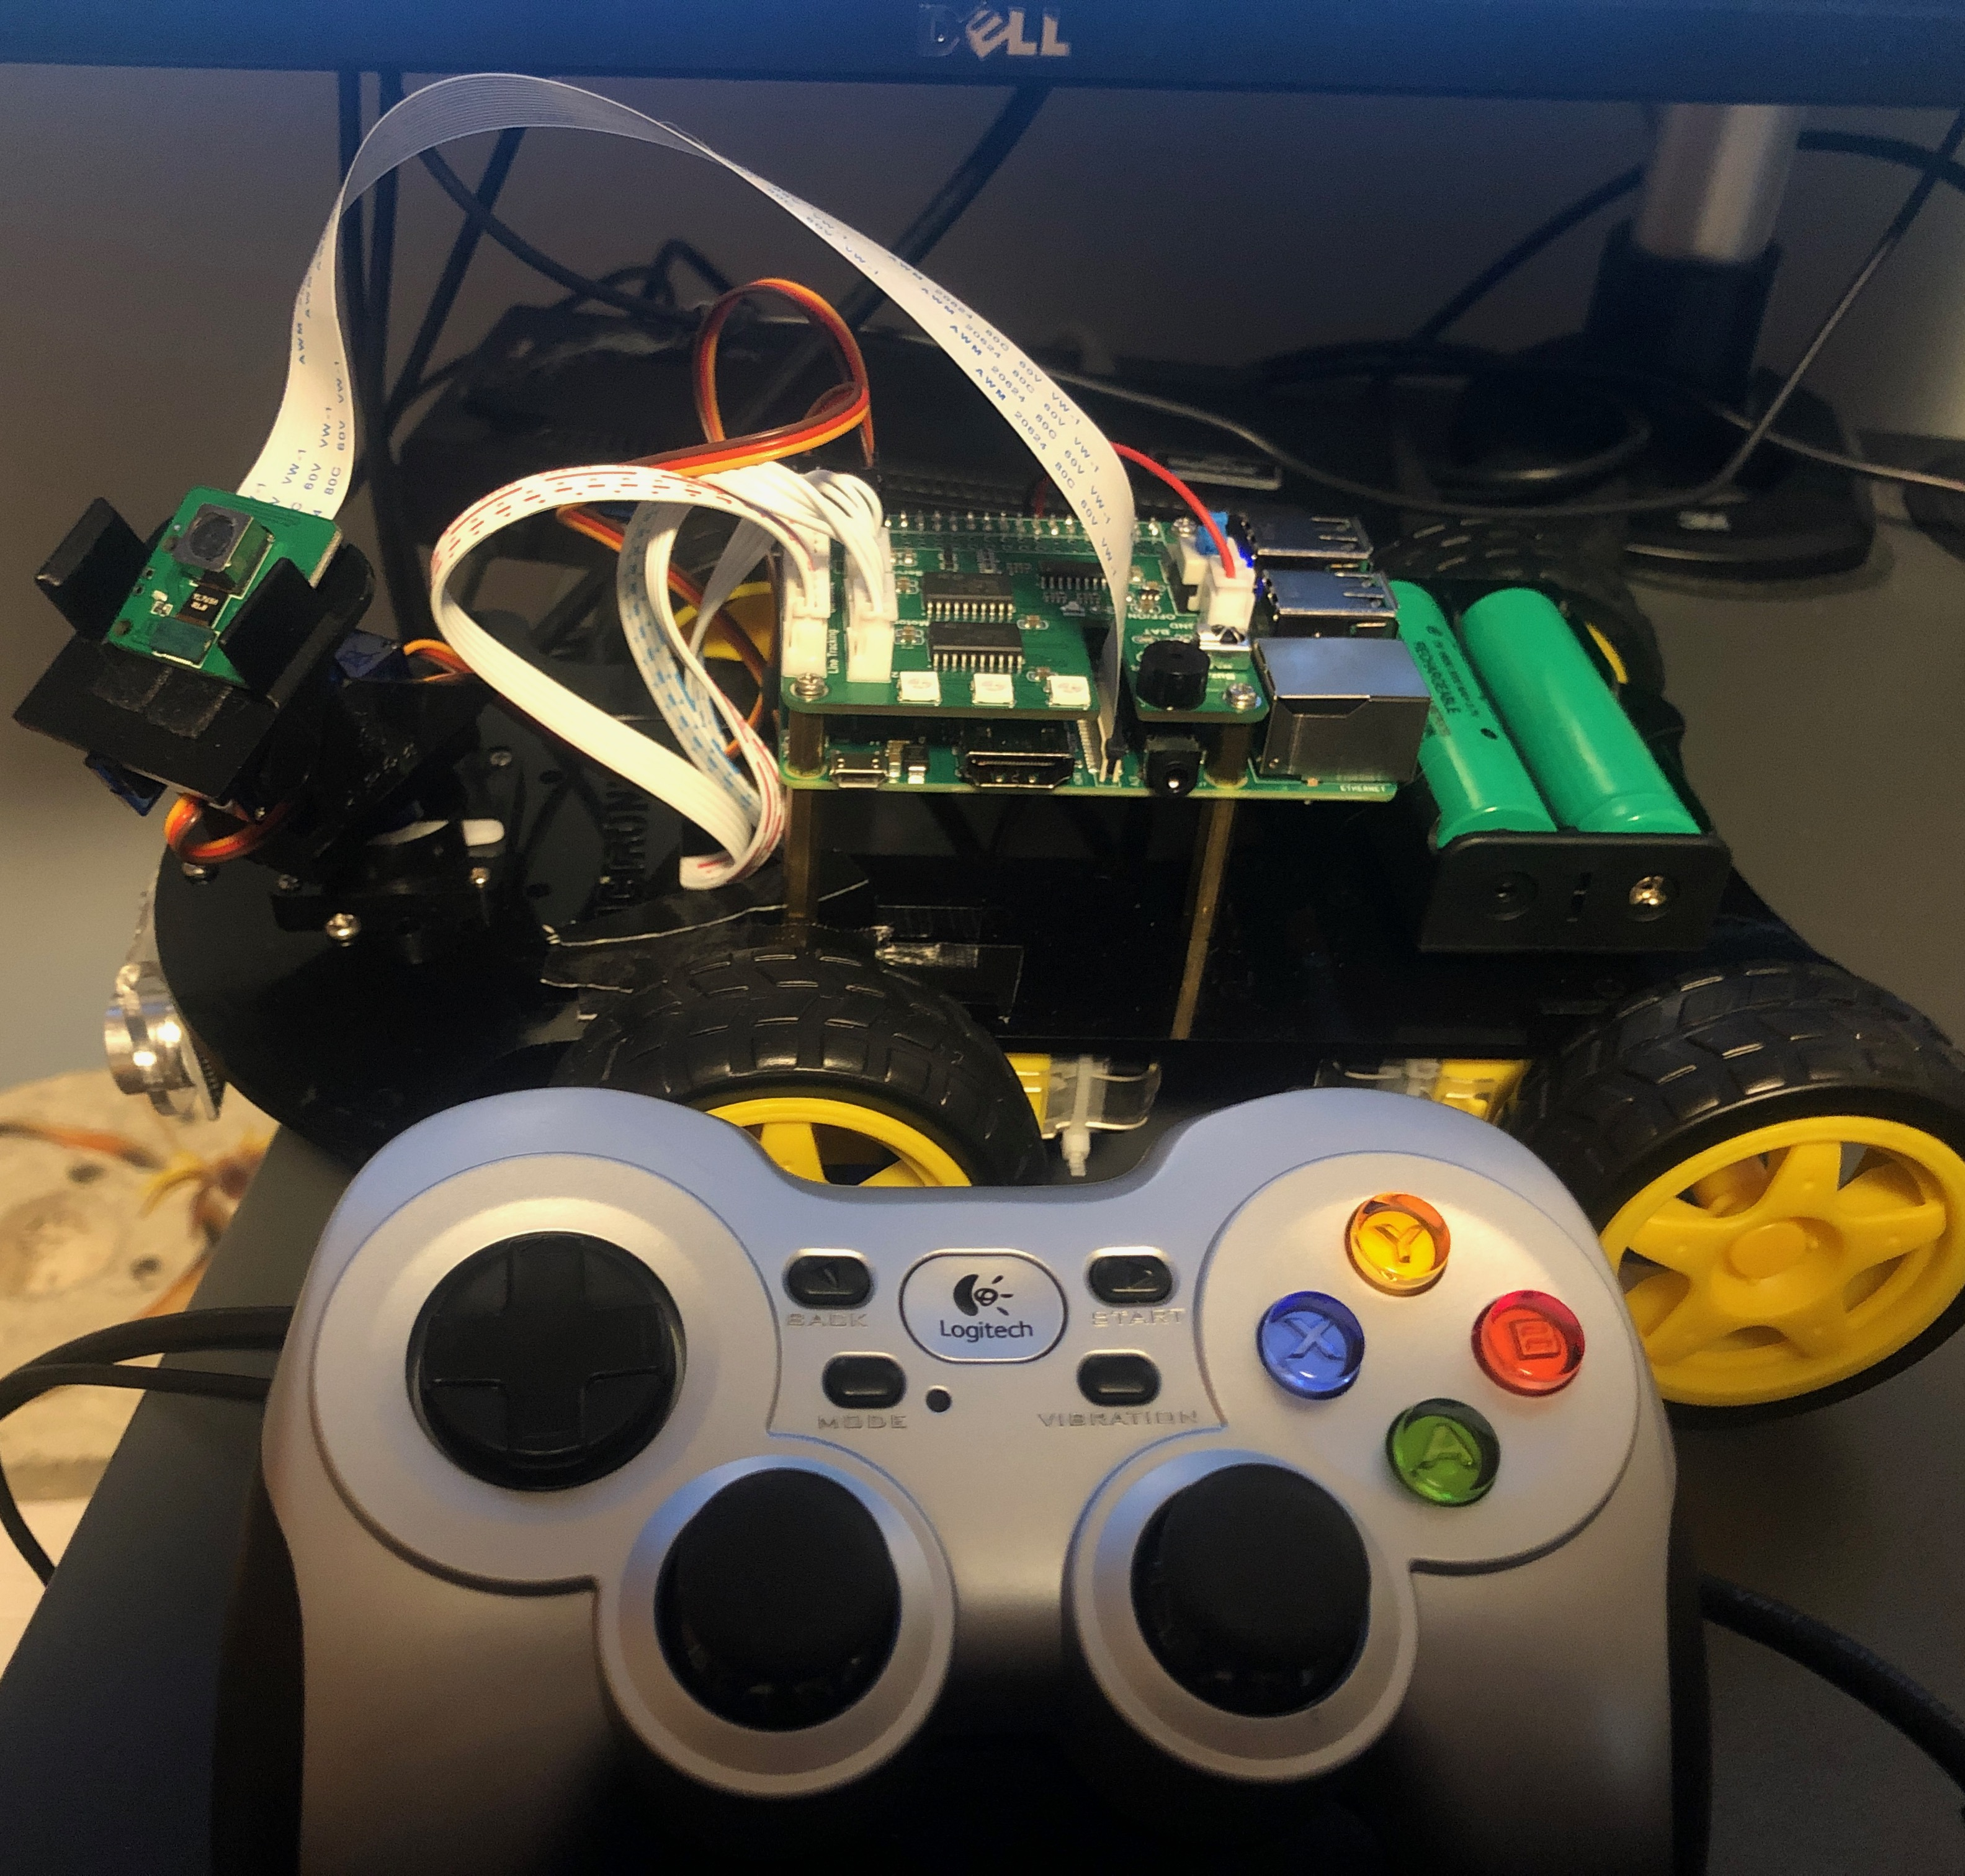 image from Raspberry Pi: Programming Motors with Python and pigpio